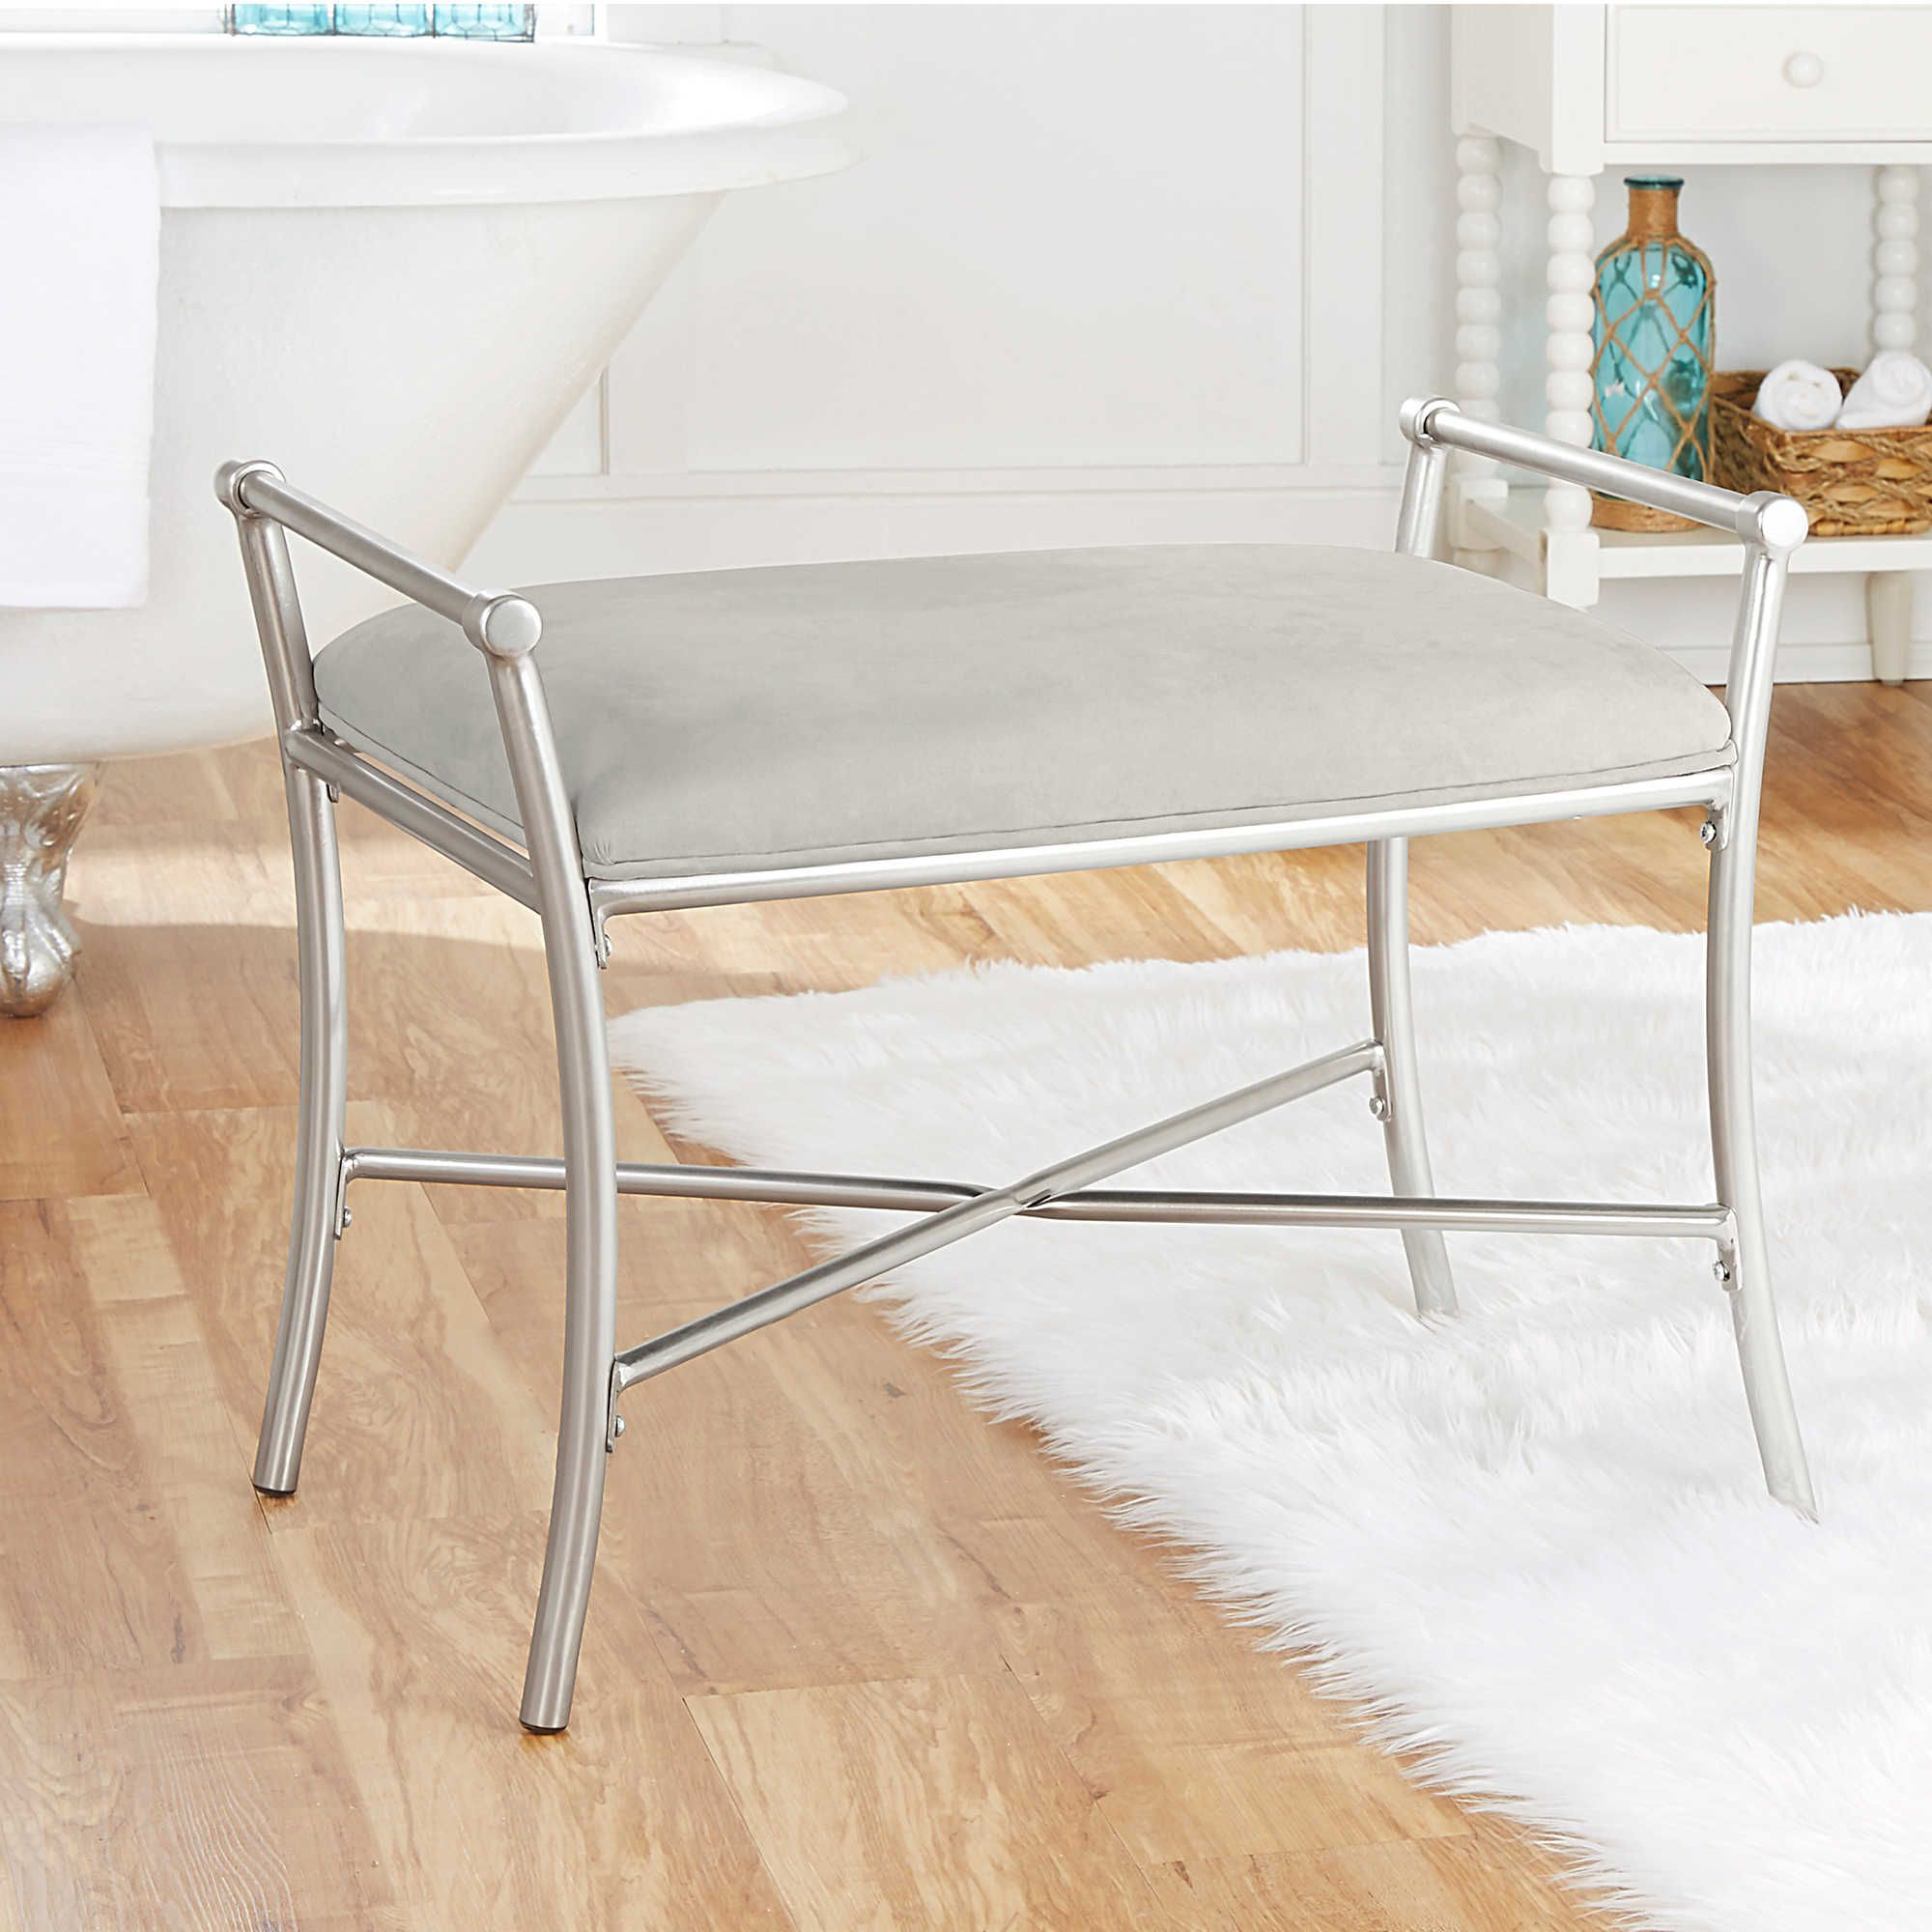 Harlow Vanity Bench In Brushed Nickel Bathroom Vanity Stool